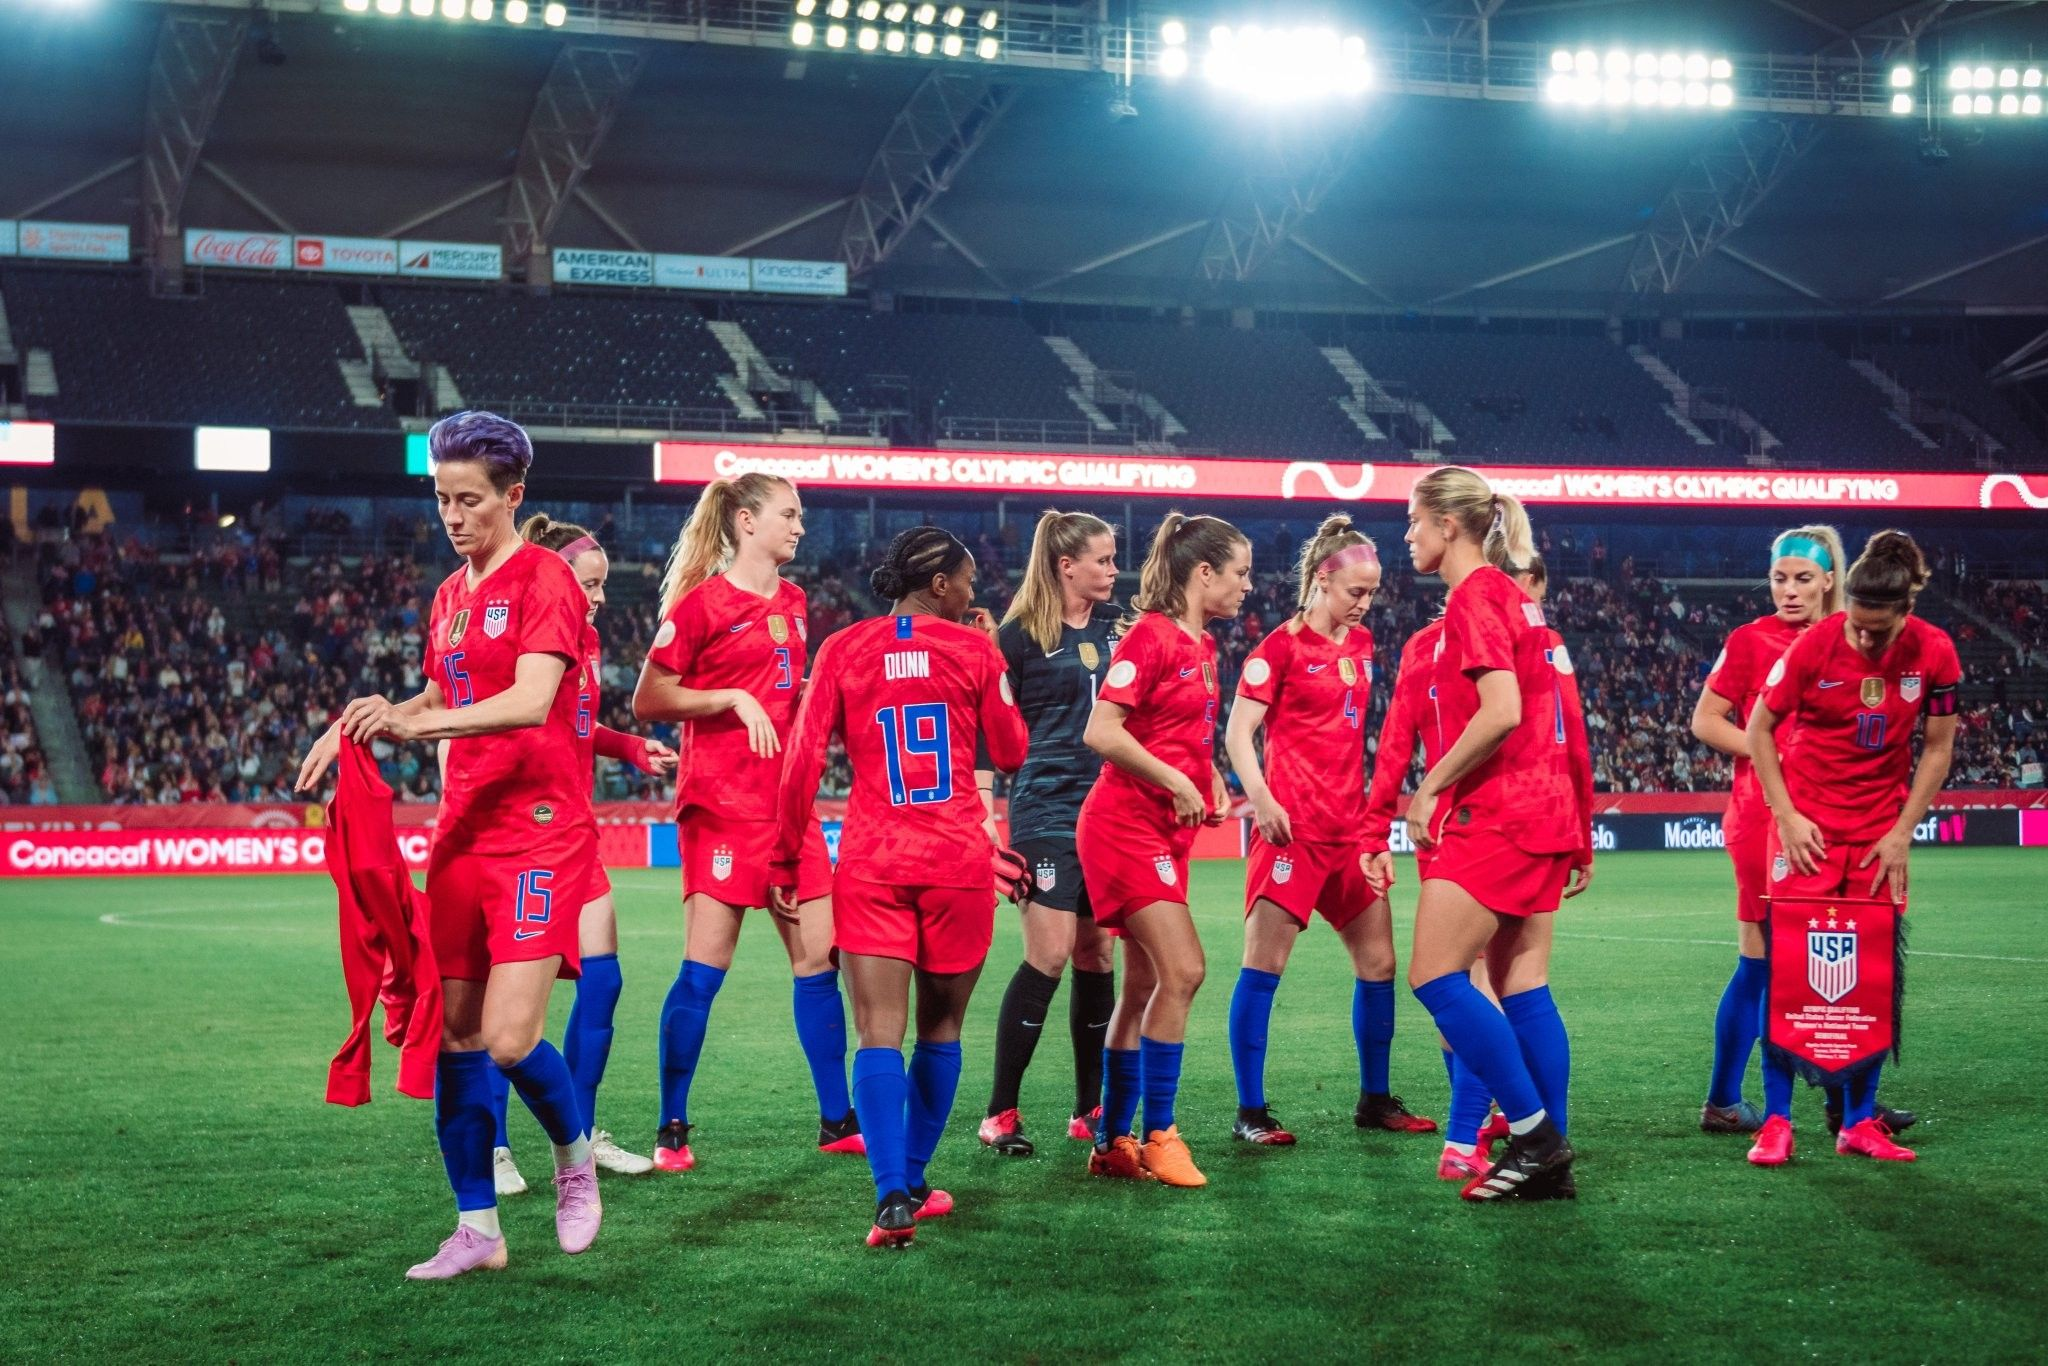 Pin By Samantha On Uswnt In 2020 Girls Soccer Team Uswnt Soccer Uswnt